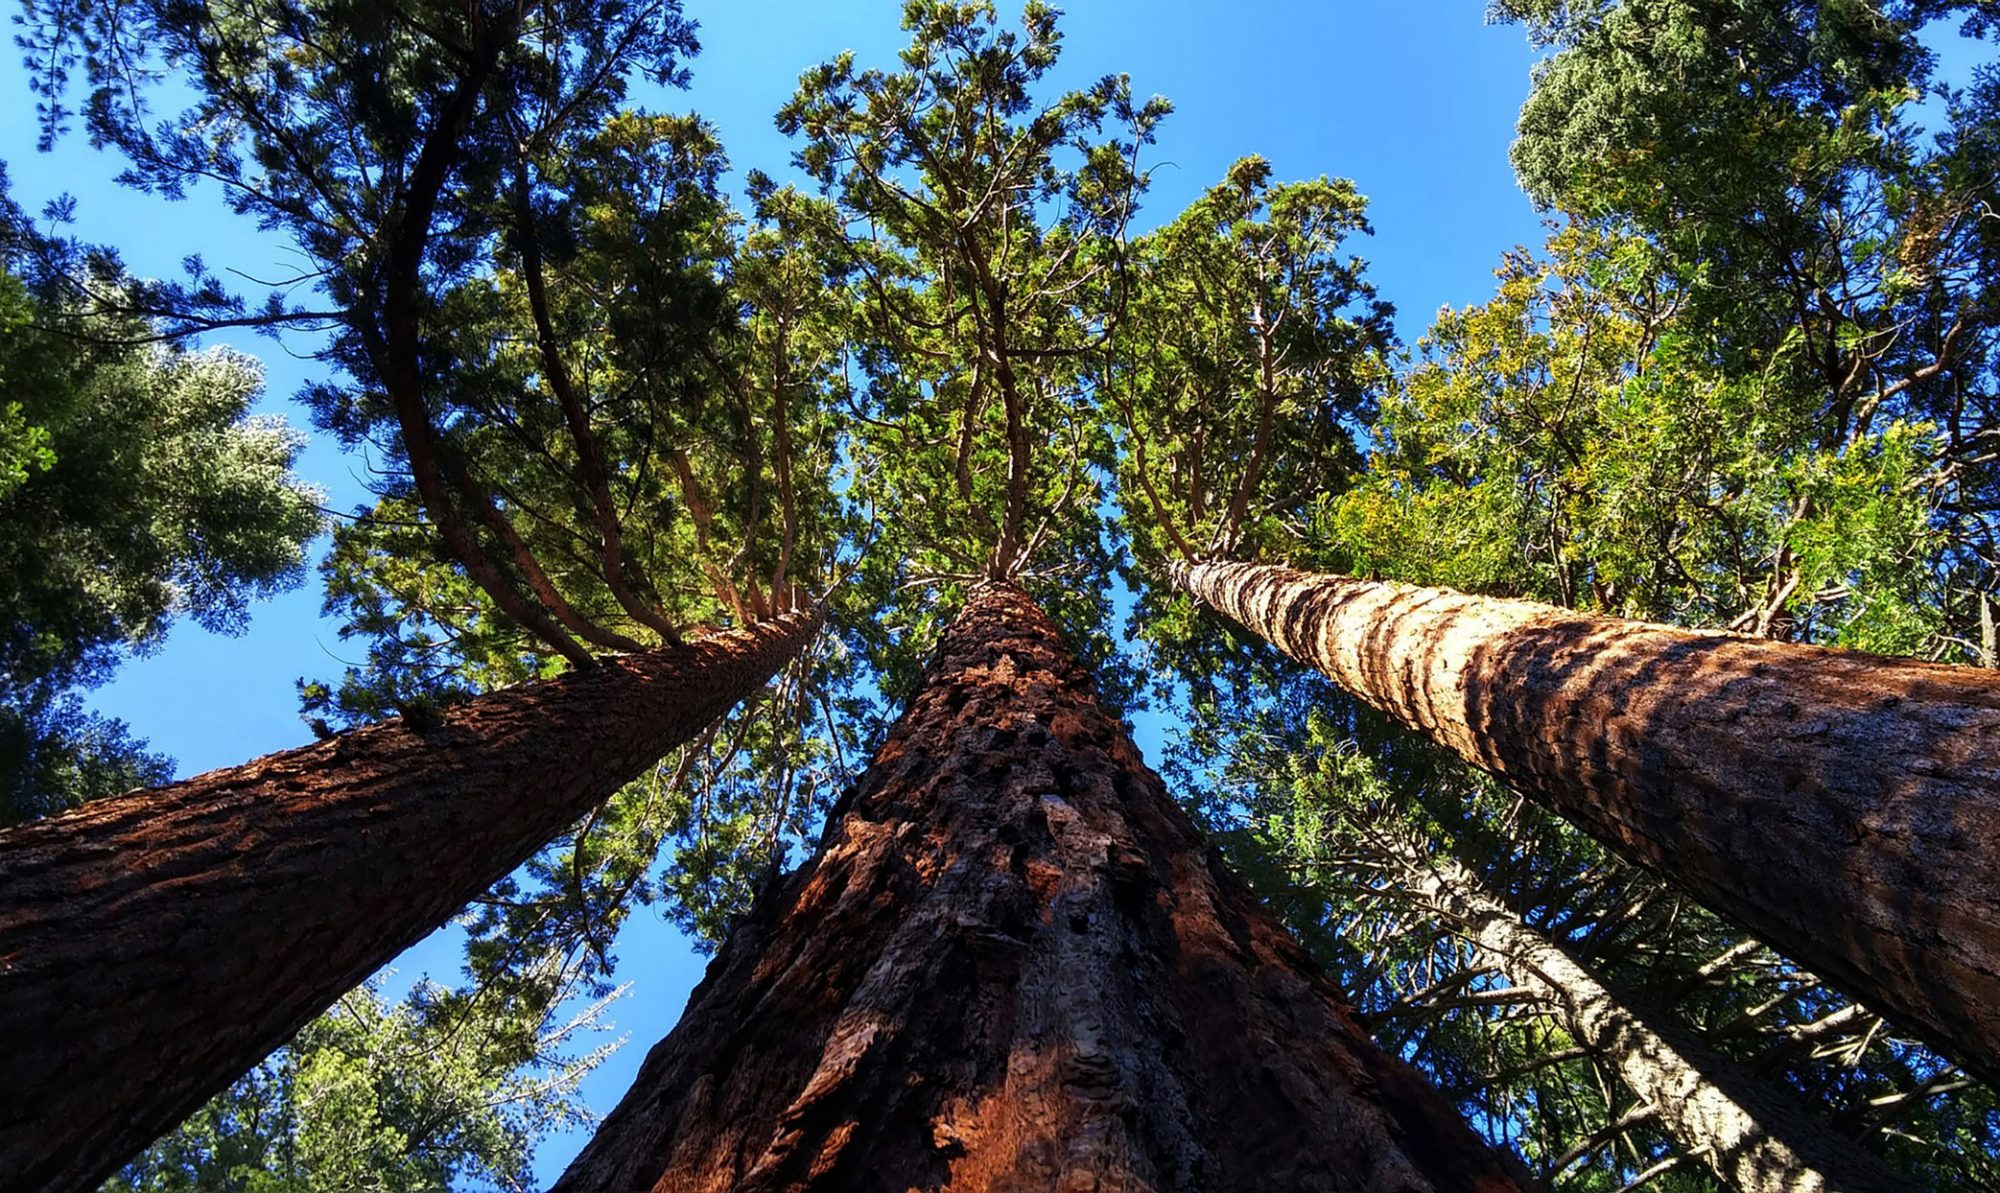 grove of giant sequoia trees against a blue sky